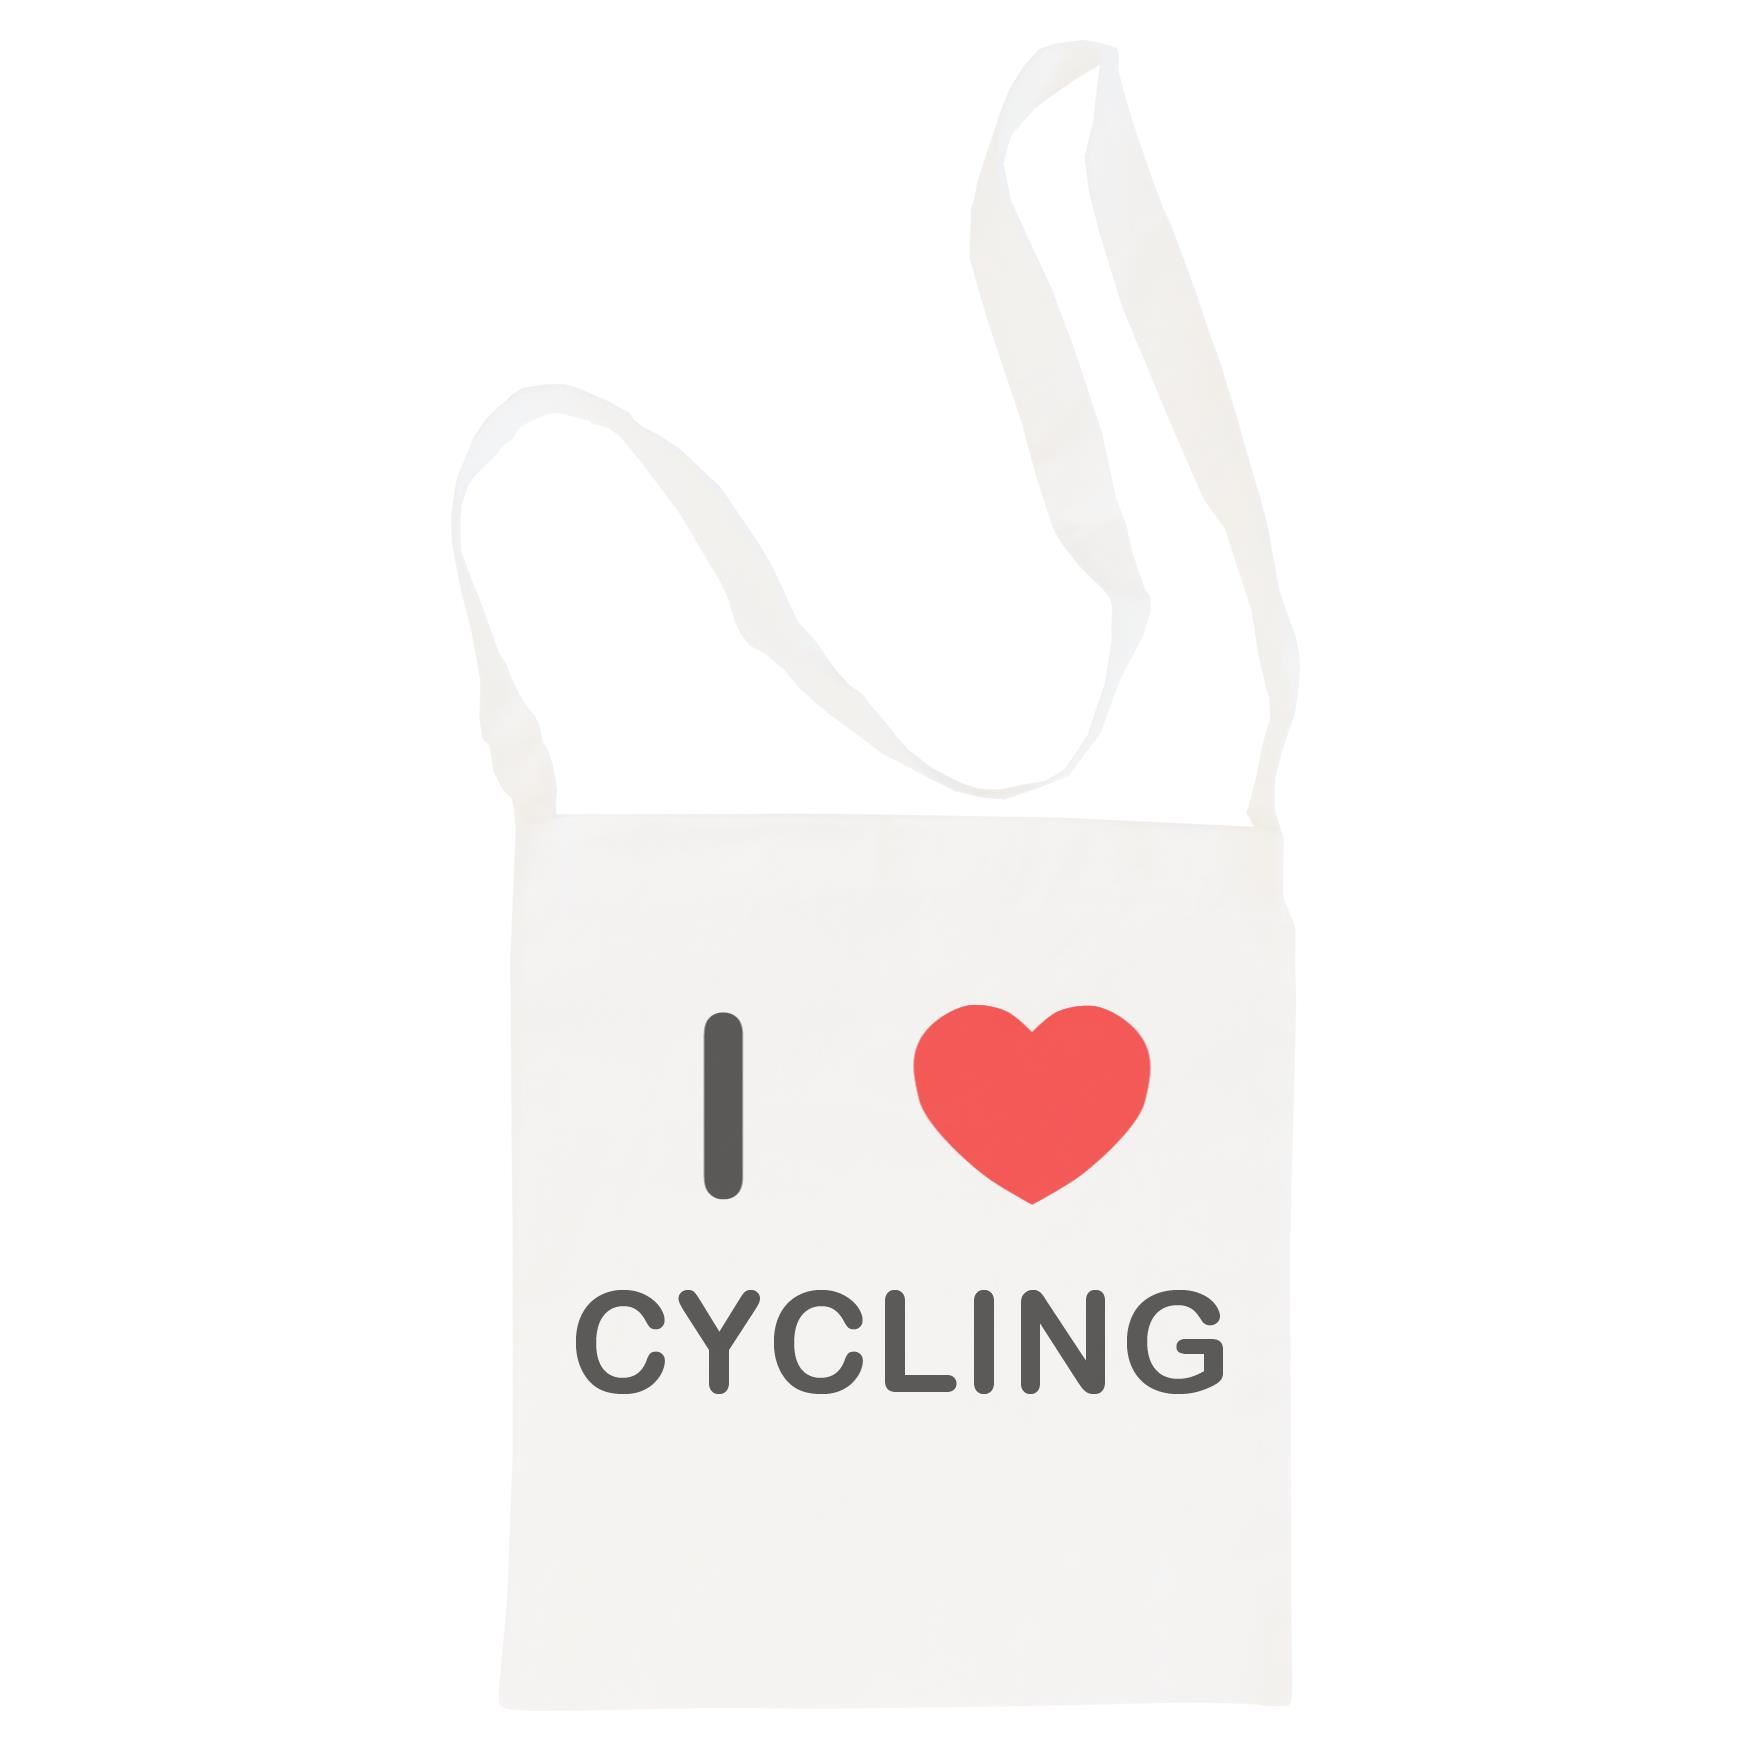 I Love Cycling - Cotton Bag | Size choice Tote, Shopper or Sling